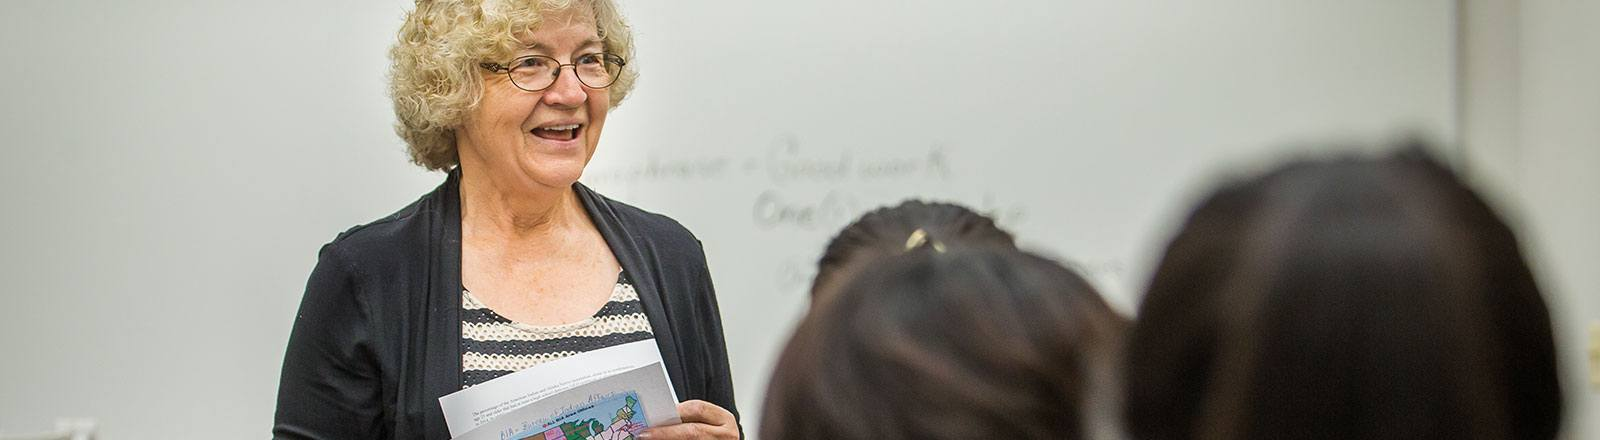 Professor in front of students speaking with paper of United States map